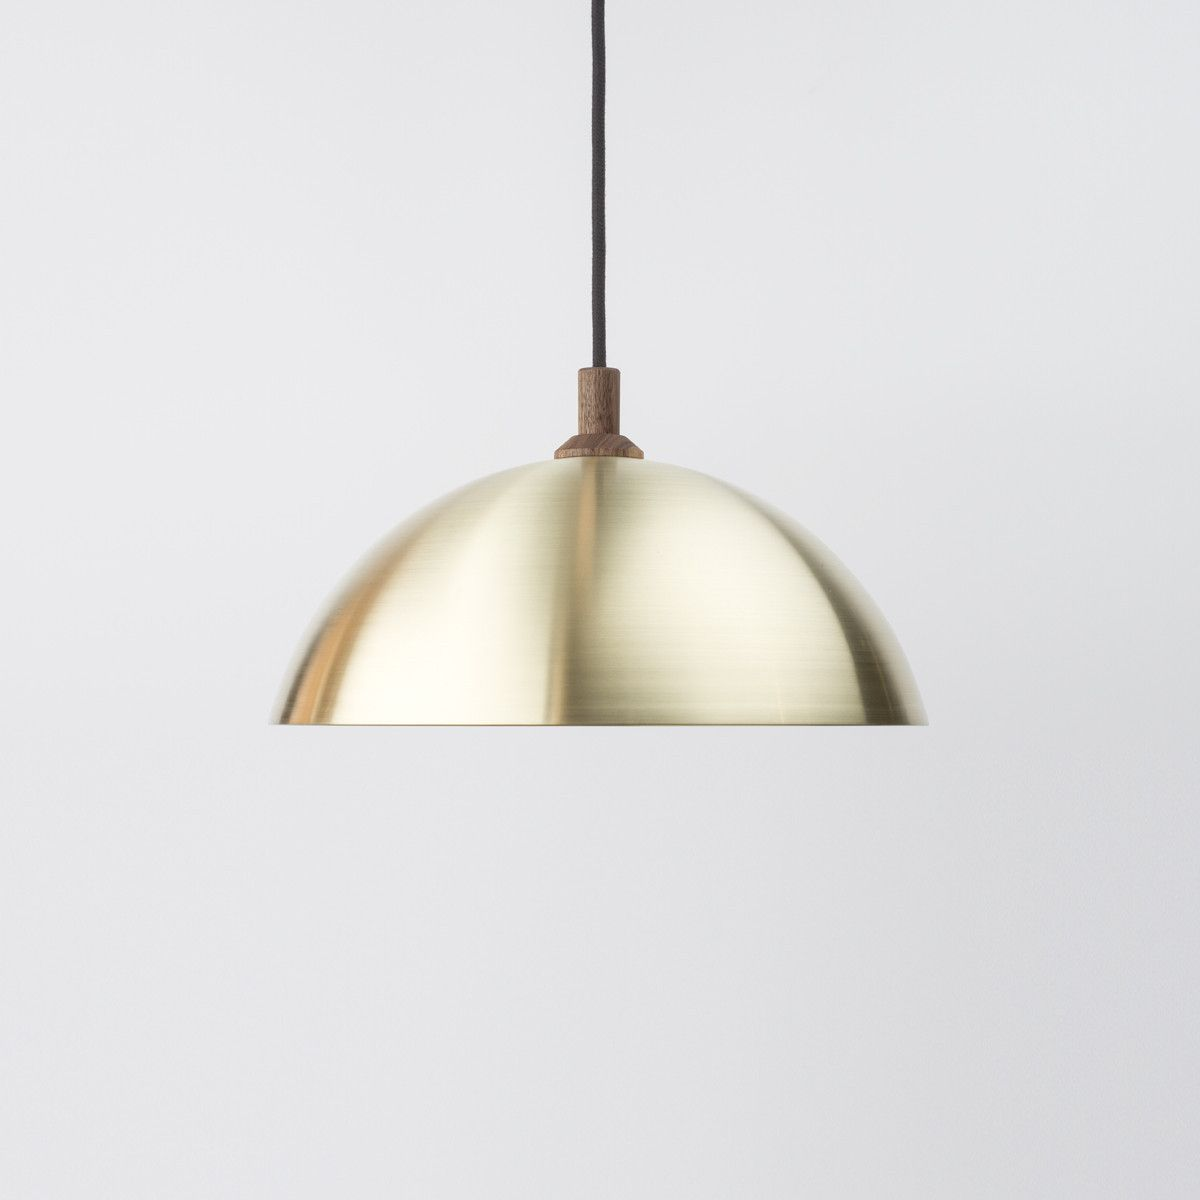 dome lighting fixtures. Based In New York, Allied Maker Is A Contemporary Lighting Design And Manufacturing Studio Specializing Handcrafted Fixtures. Dome Fixtures